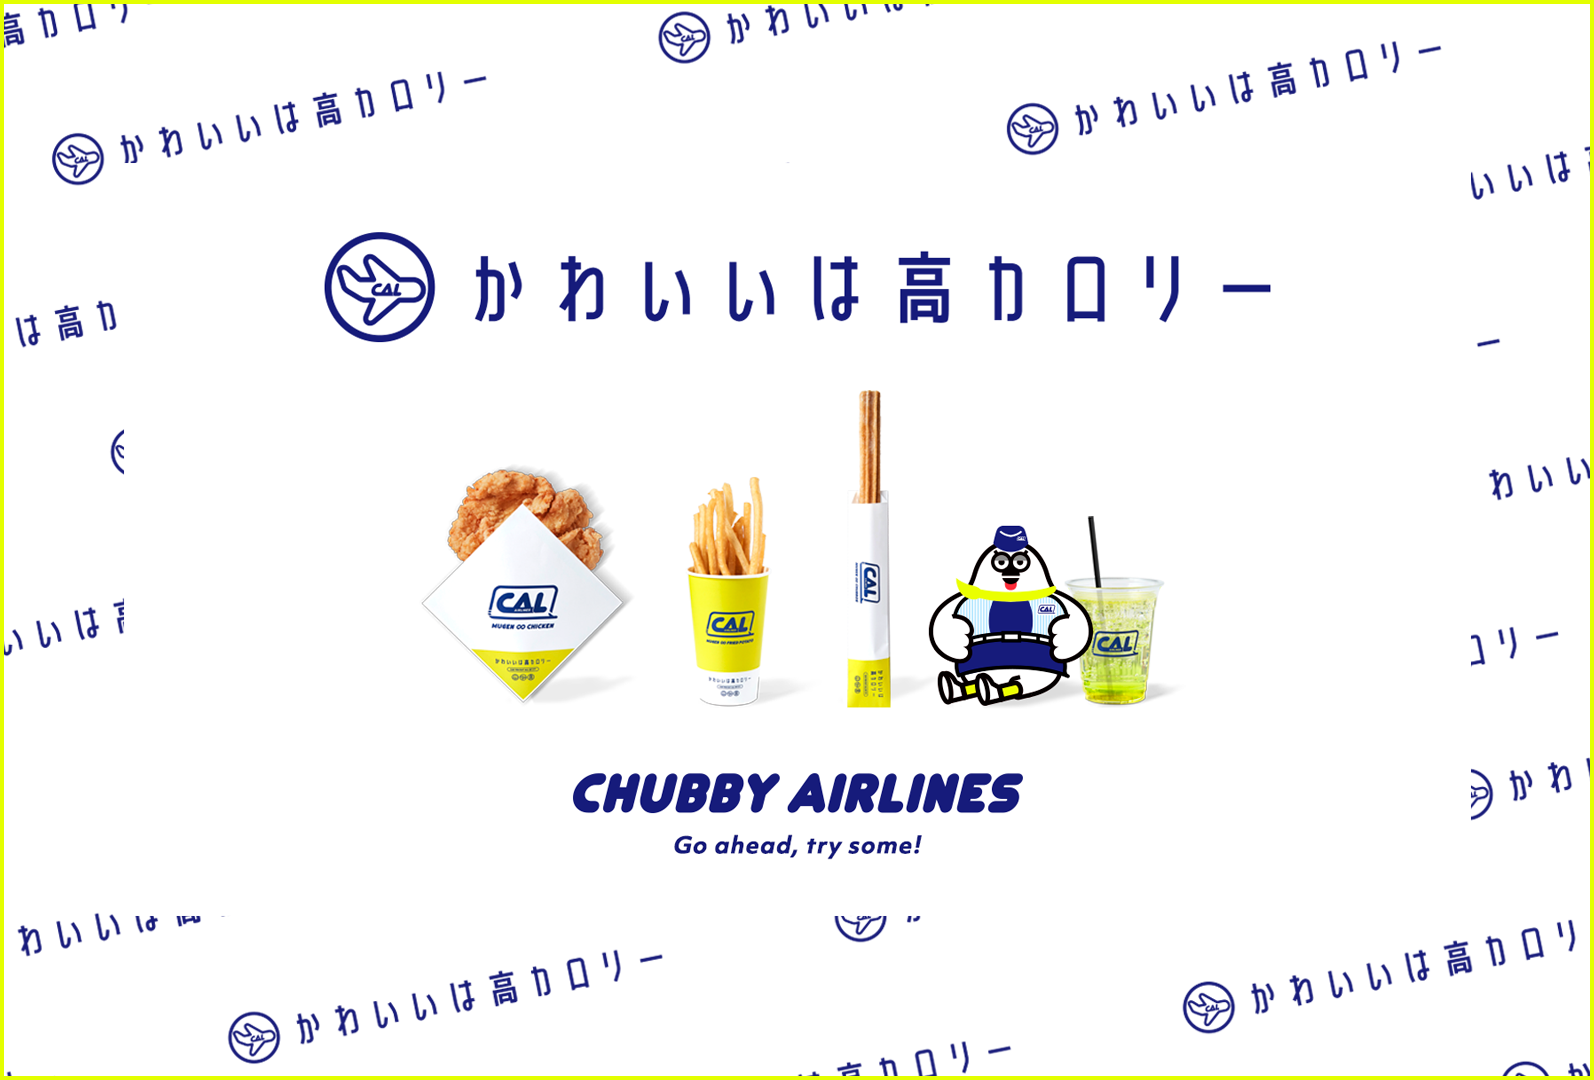 What's CHUBBY AIRLINES?